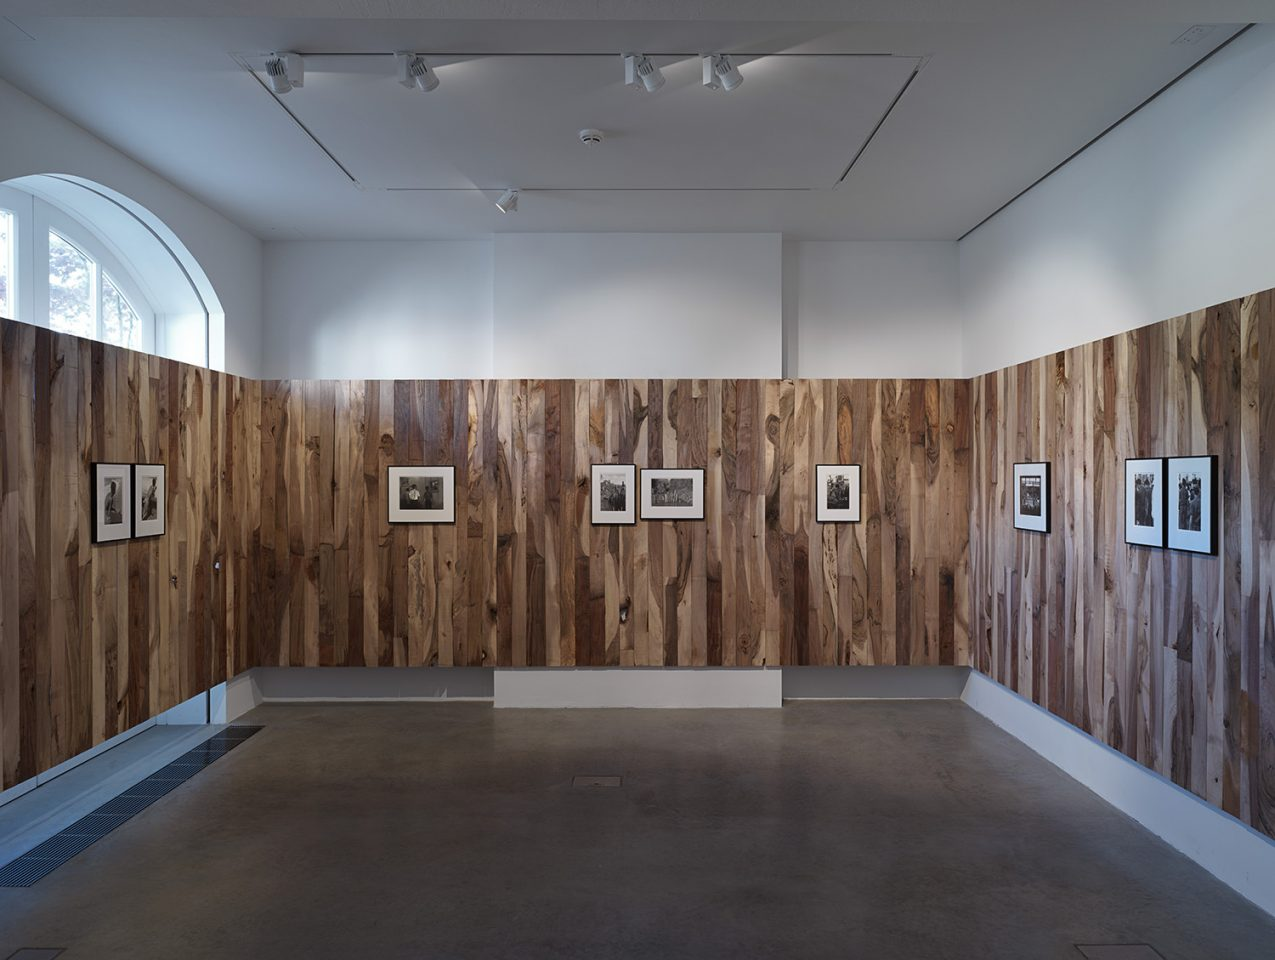 Danh Vo, Photographs of Dr. Joseph M. Carrier 1962–1973, 2010 Installation view at the South London Gallery, 2019 Courtesy the artist. Photo: Nick Ash